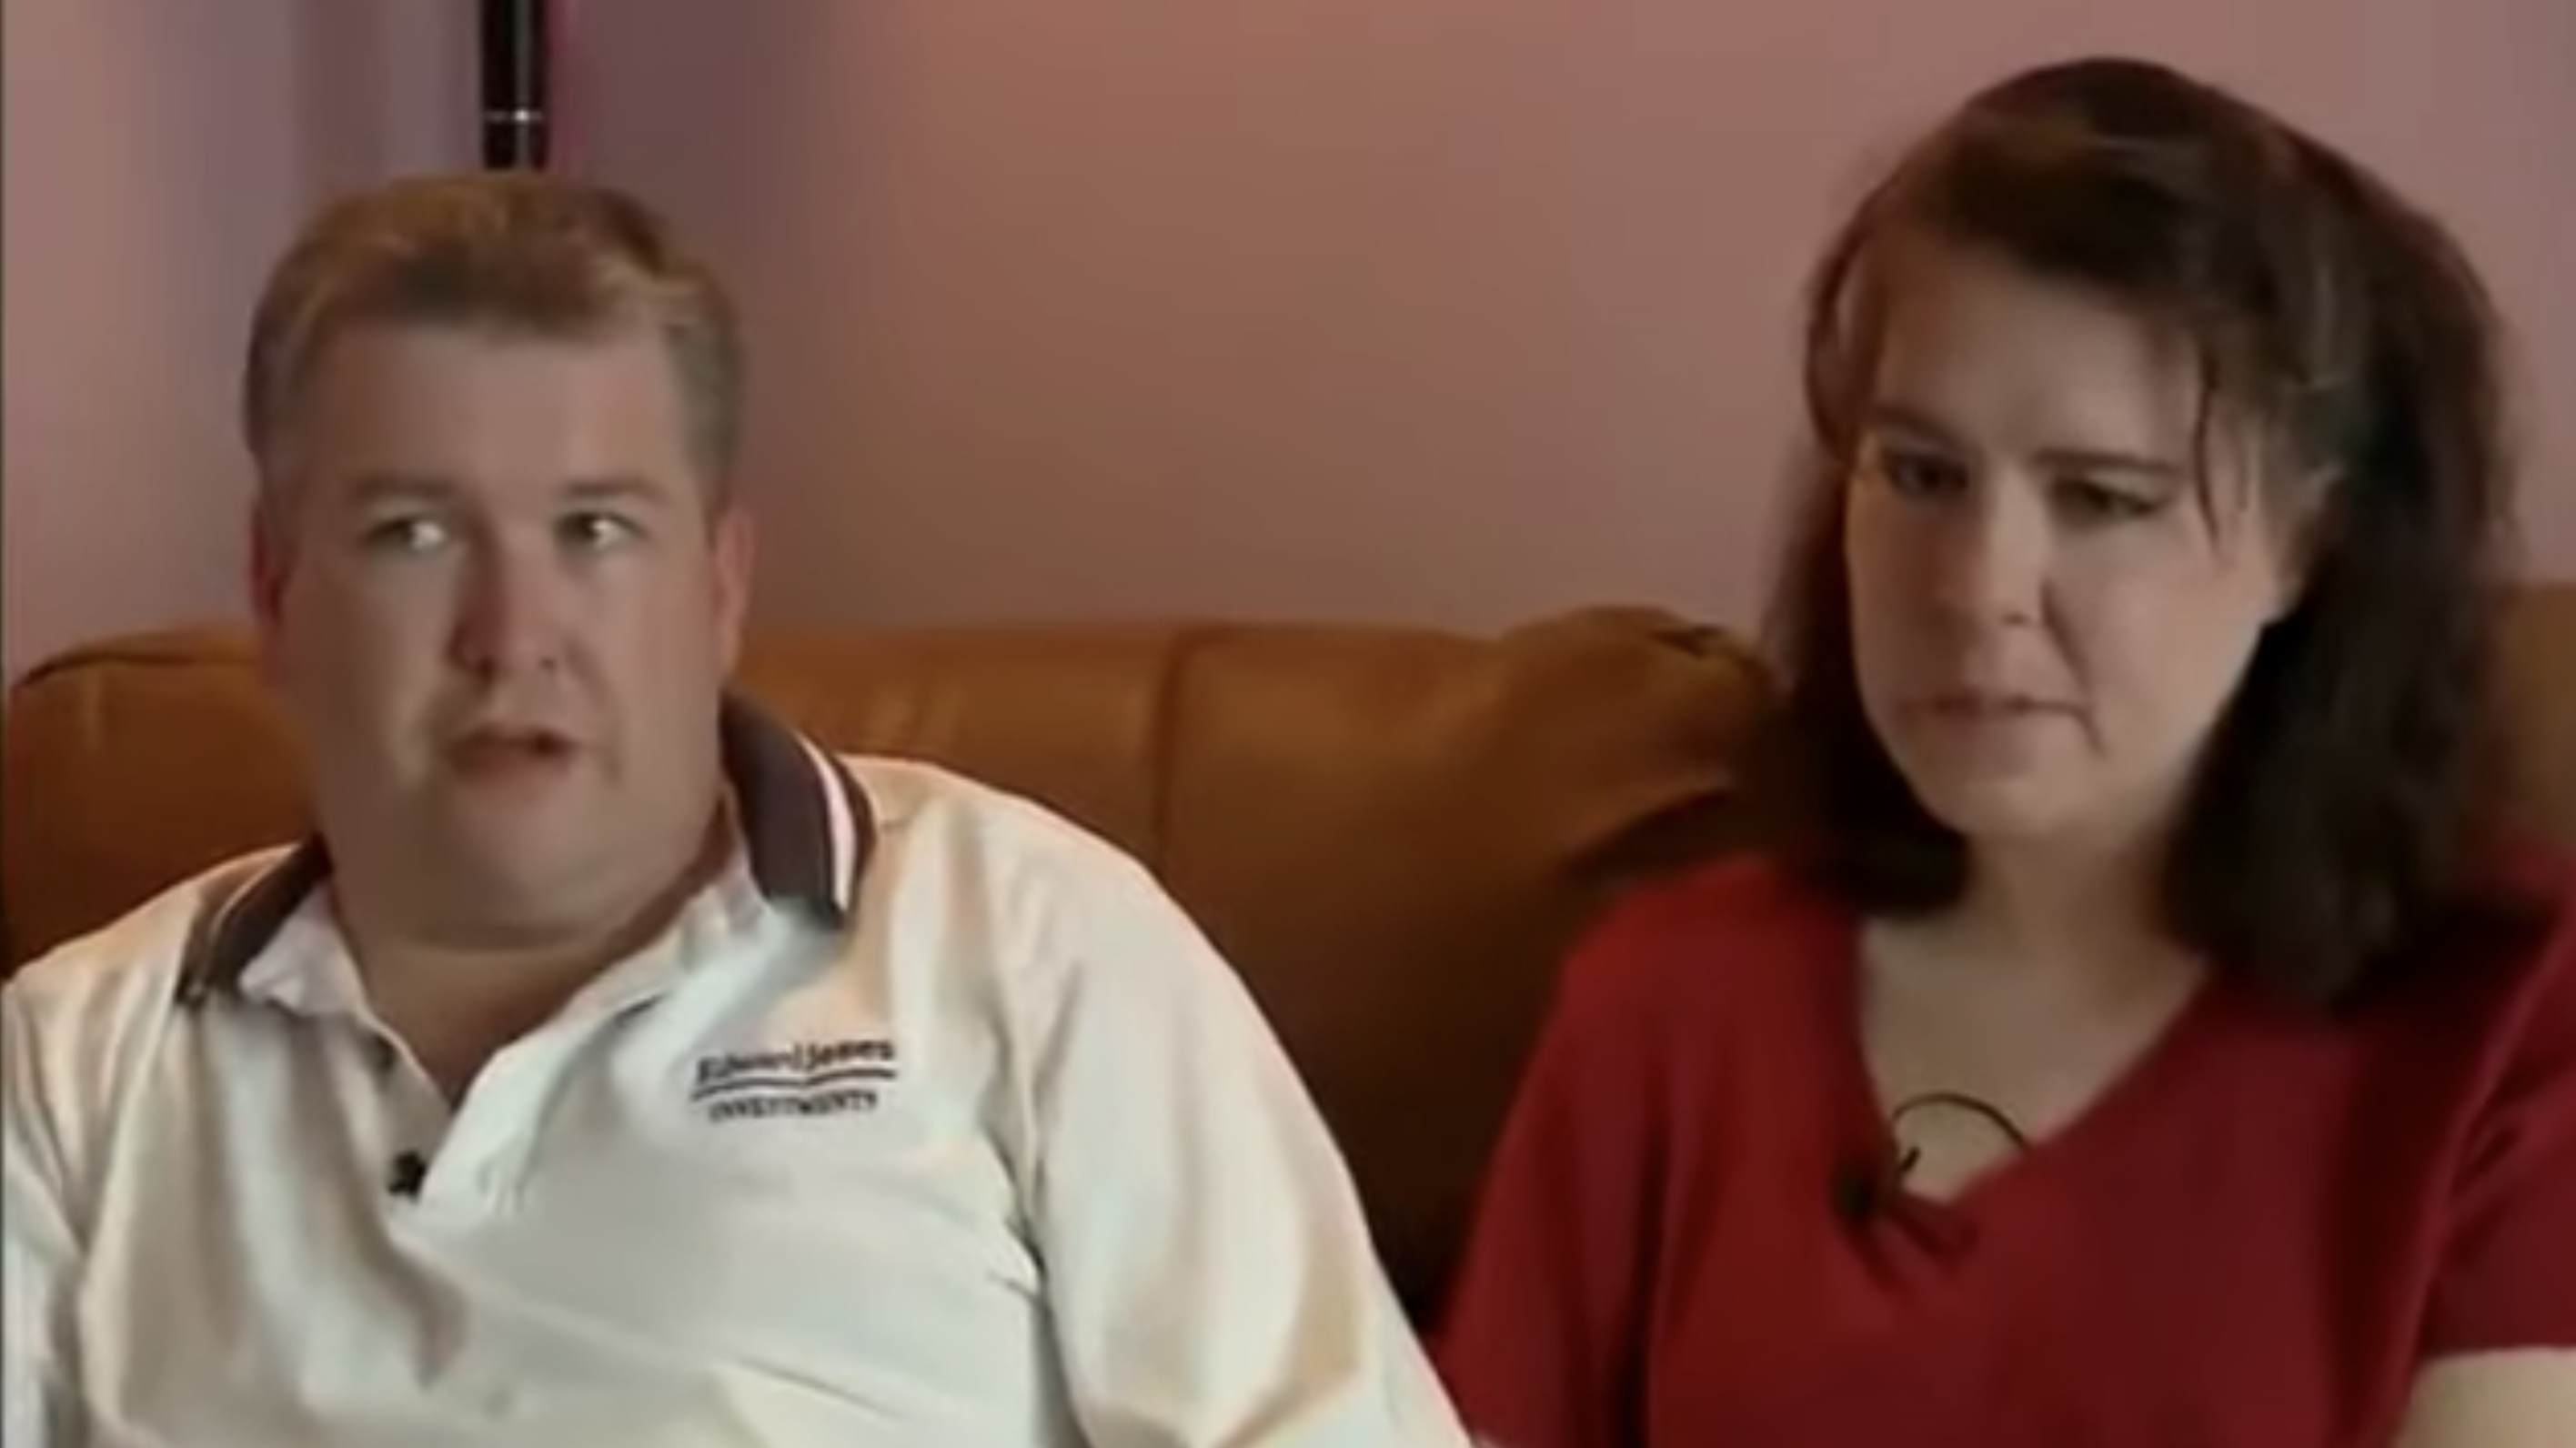 Couple sitting on their couch looking upset